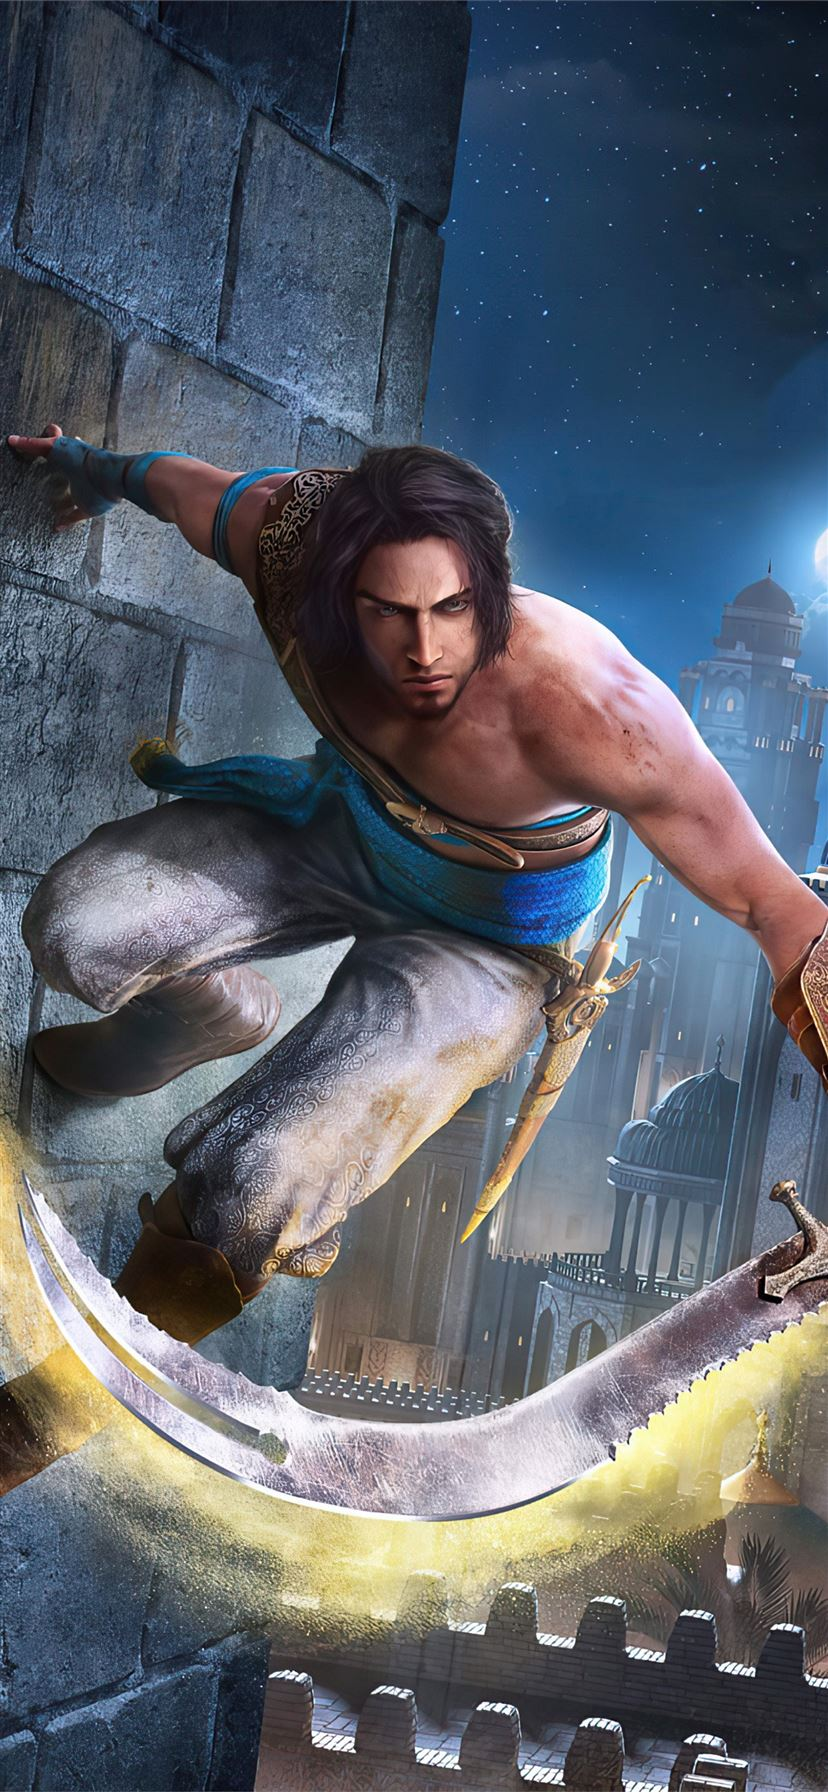 prince of persia the sands of time remake 2021 iPhone 11 wallpaper